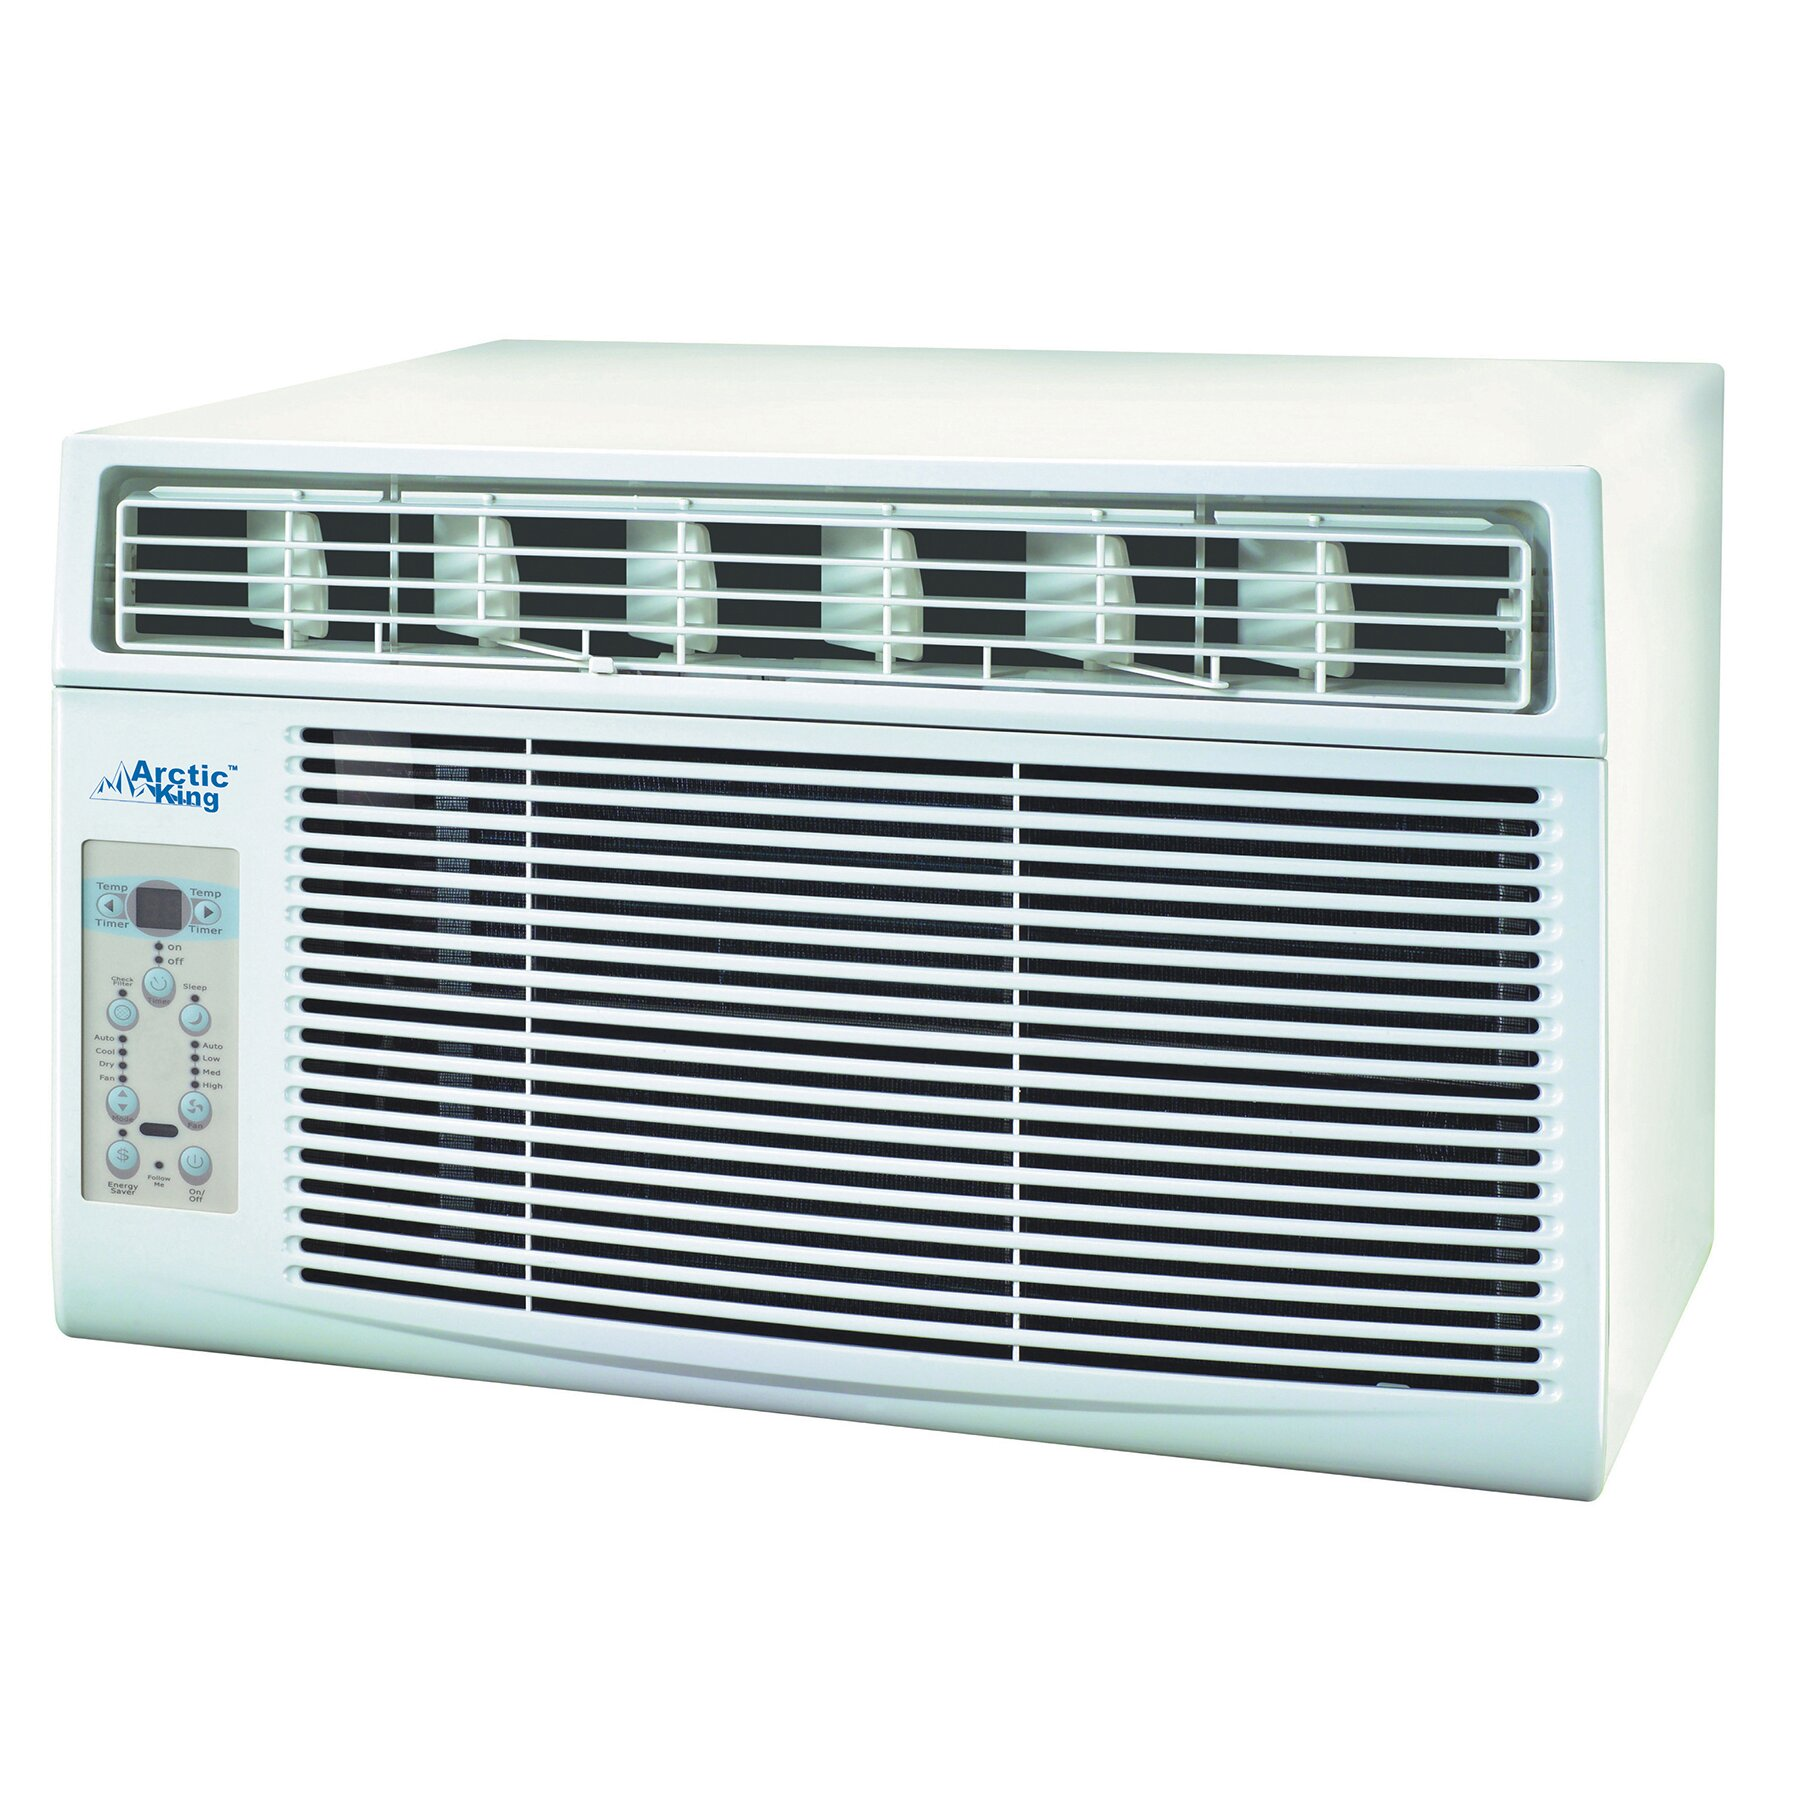 12 X 19 Window Air Conditioner Of Arctic King 12 000 Btu Window Air Conditioner With Remote